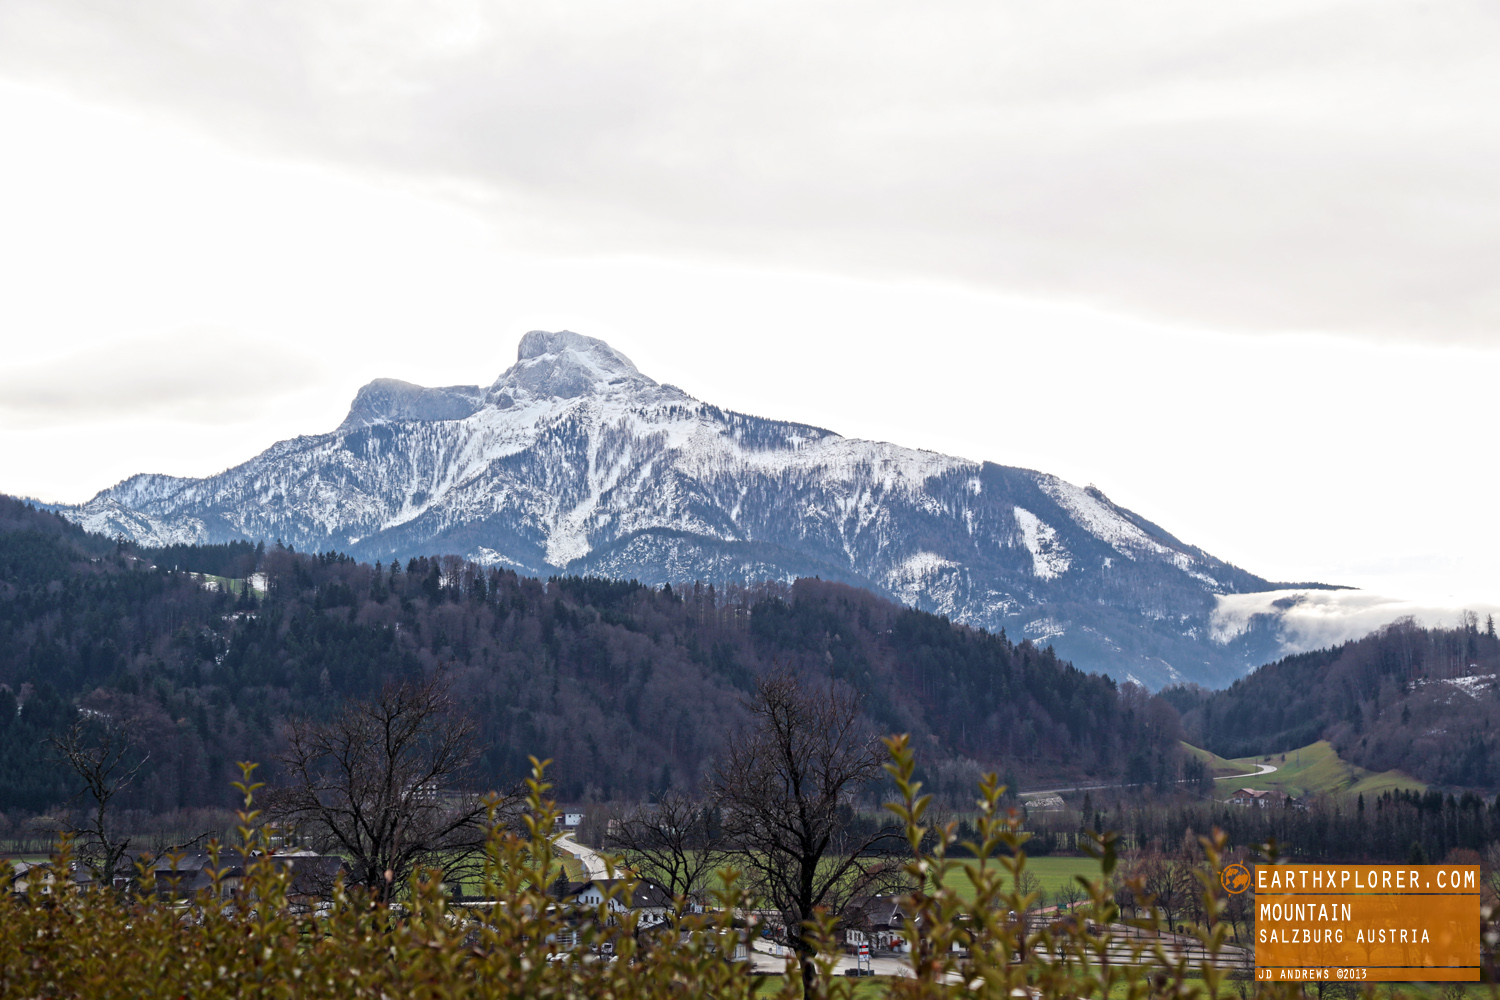 The hills are alive, outside of Salzburg, Austria.